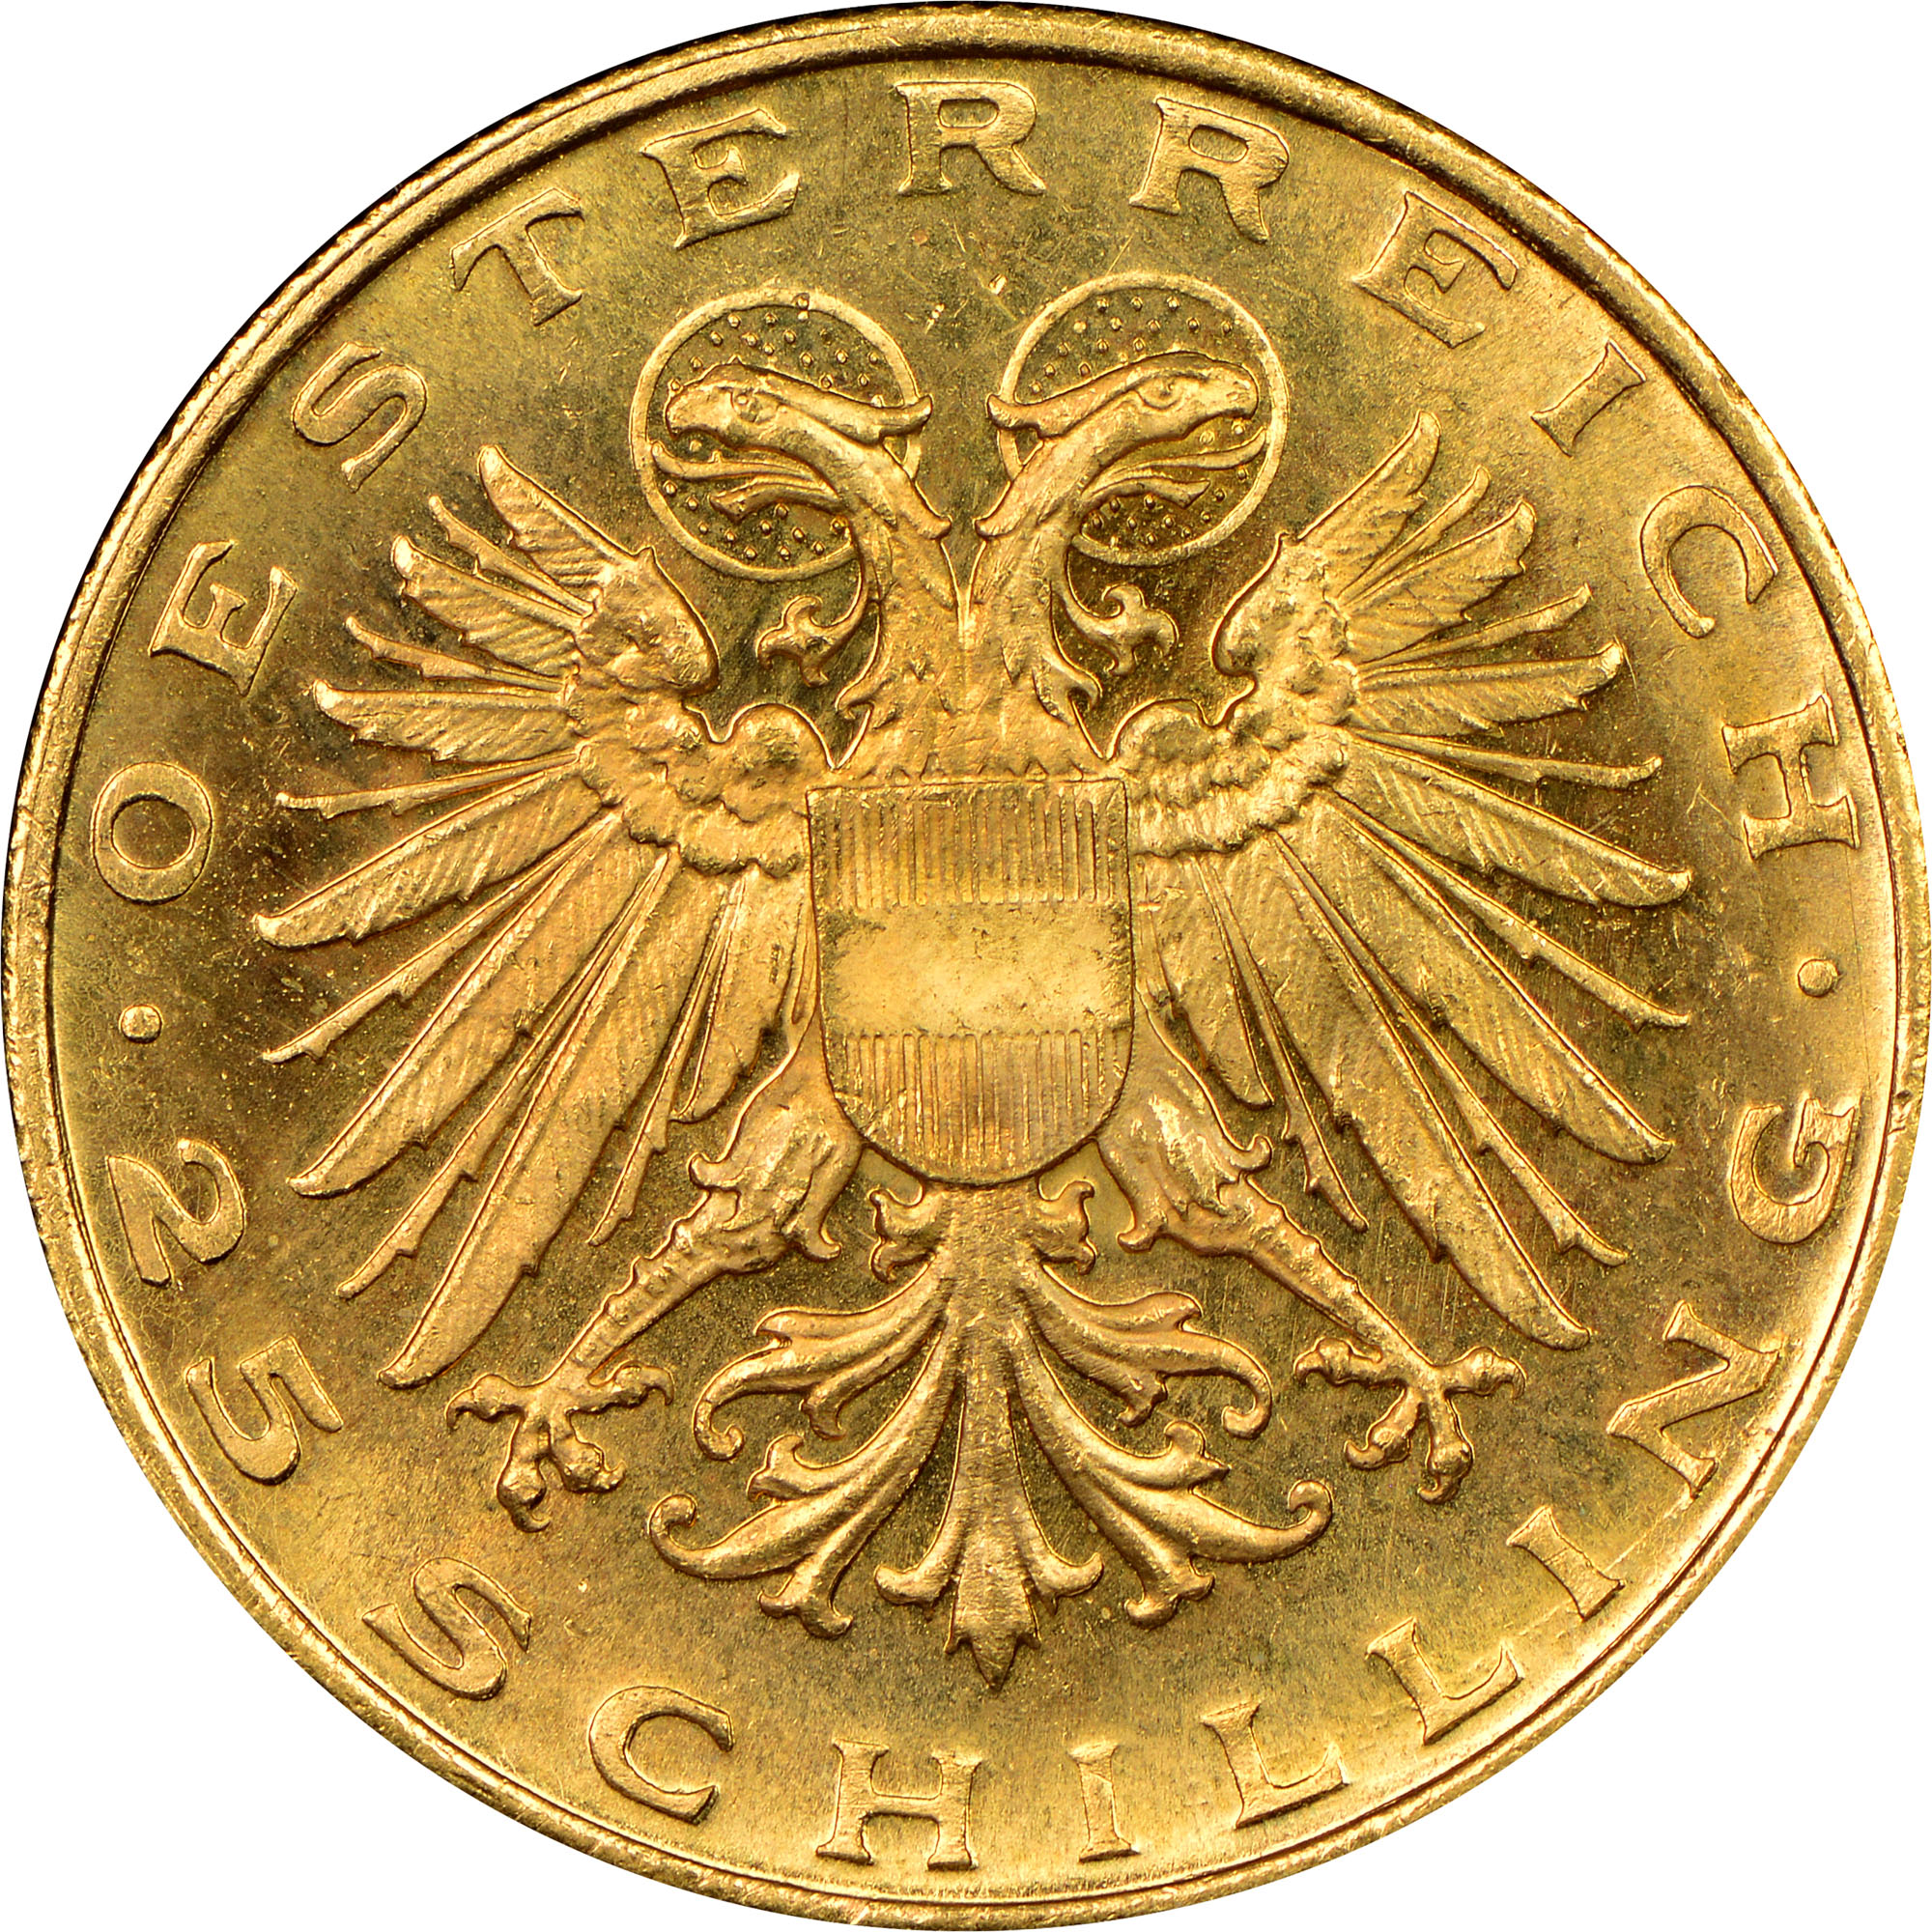 Ngc numismatic coin values youtube - In file(filename r